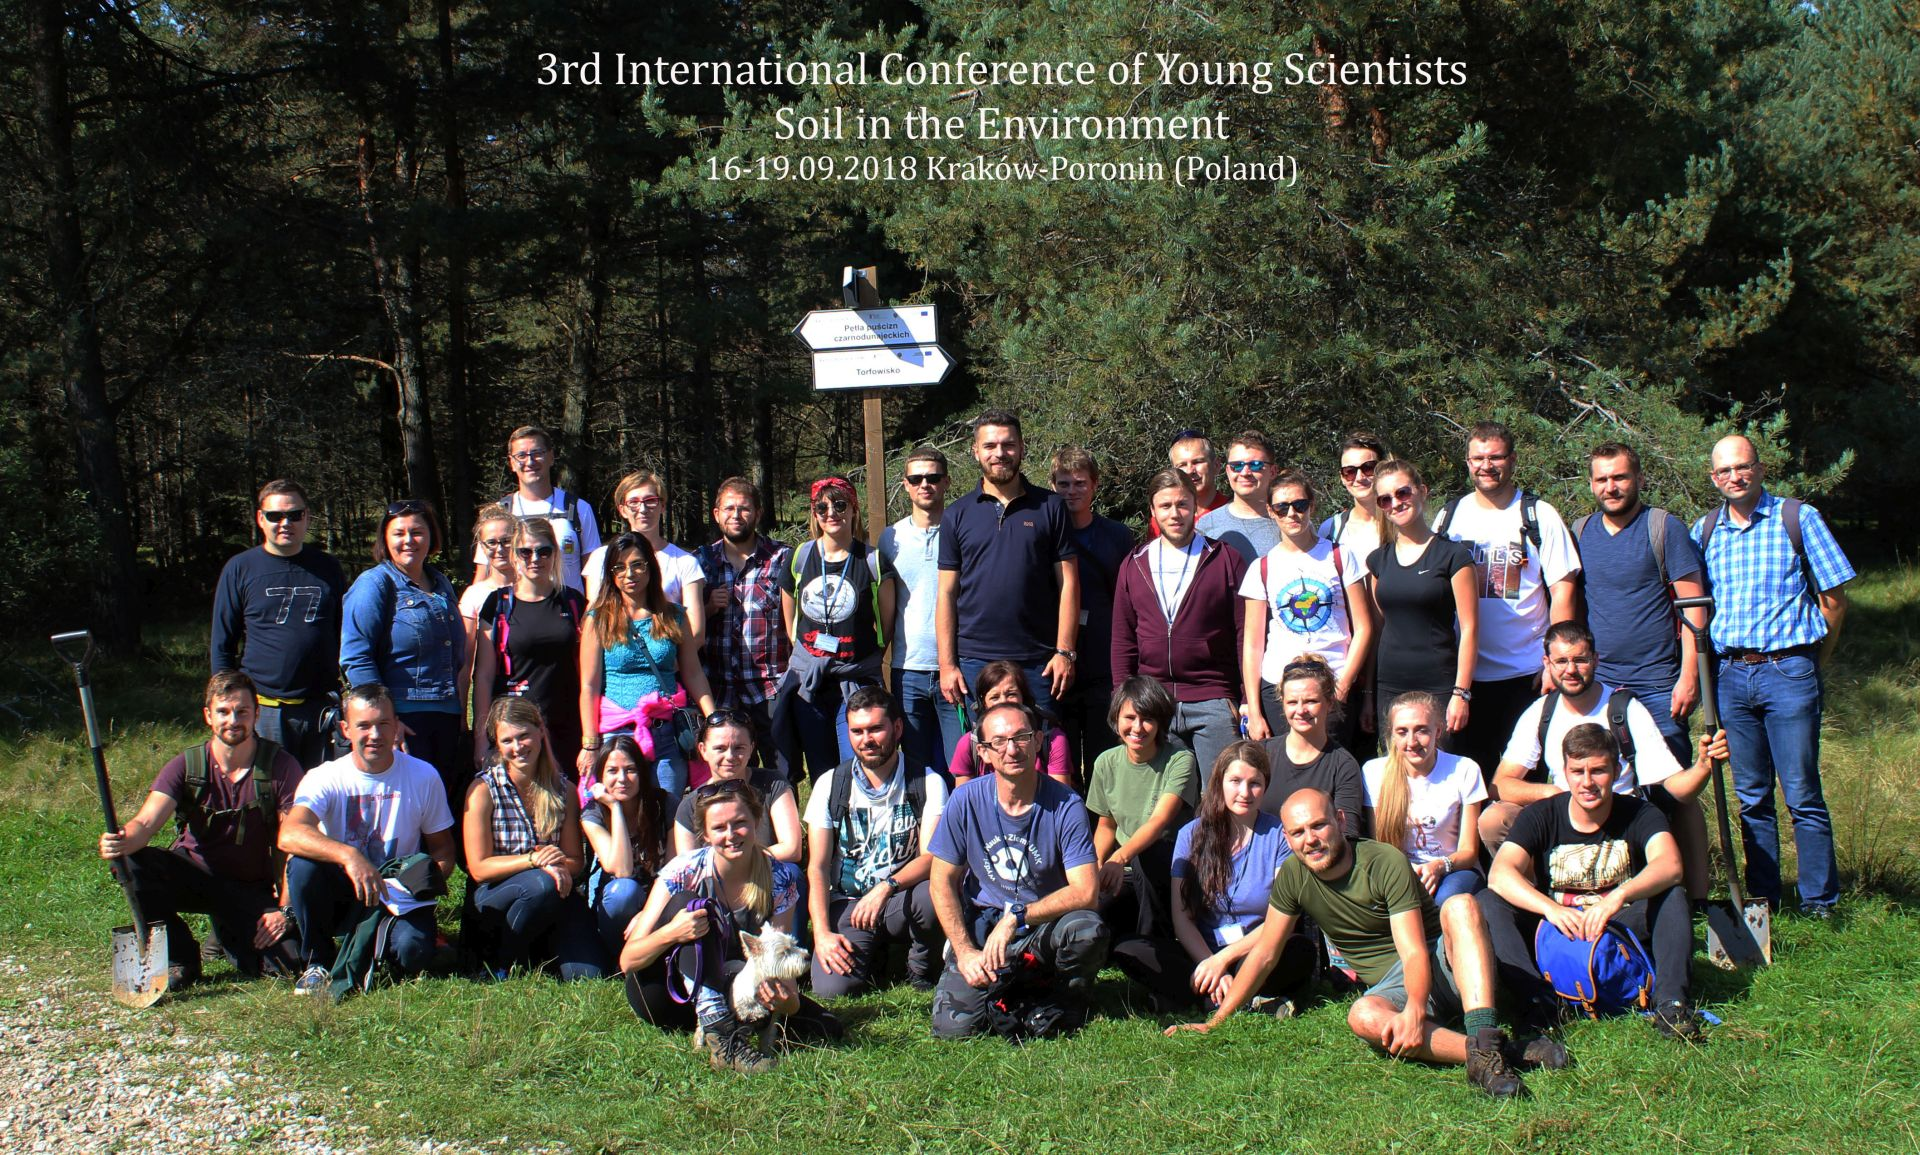 4th International Conference of Young Scientists – Soil in the Environment